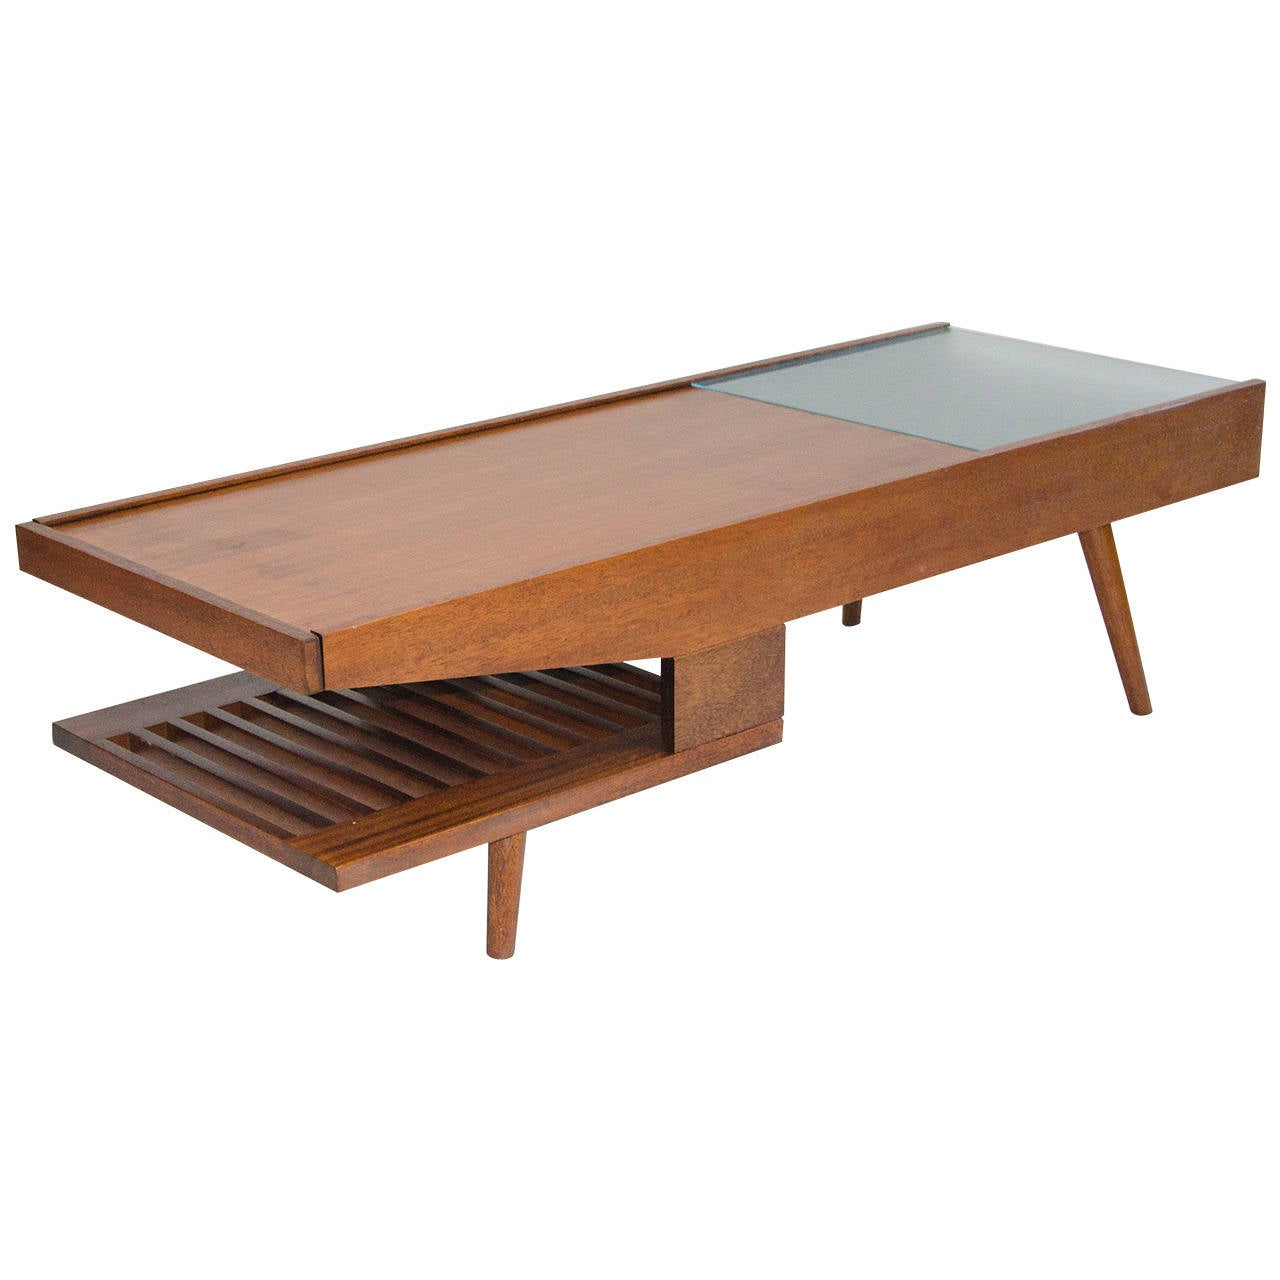 Small Modern Coffee Table 1960s For Sale At 1stdibs: Mid-Century Coffee Table, John Keal For Brown Saltman At